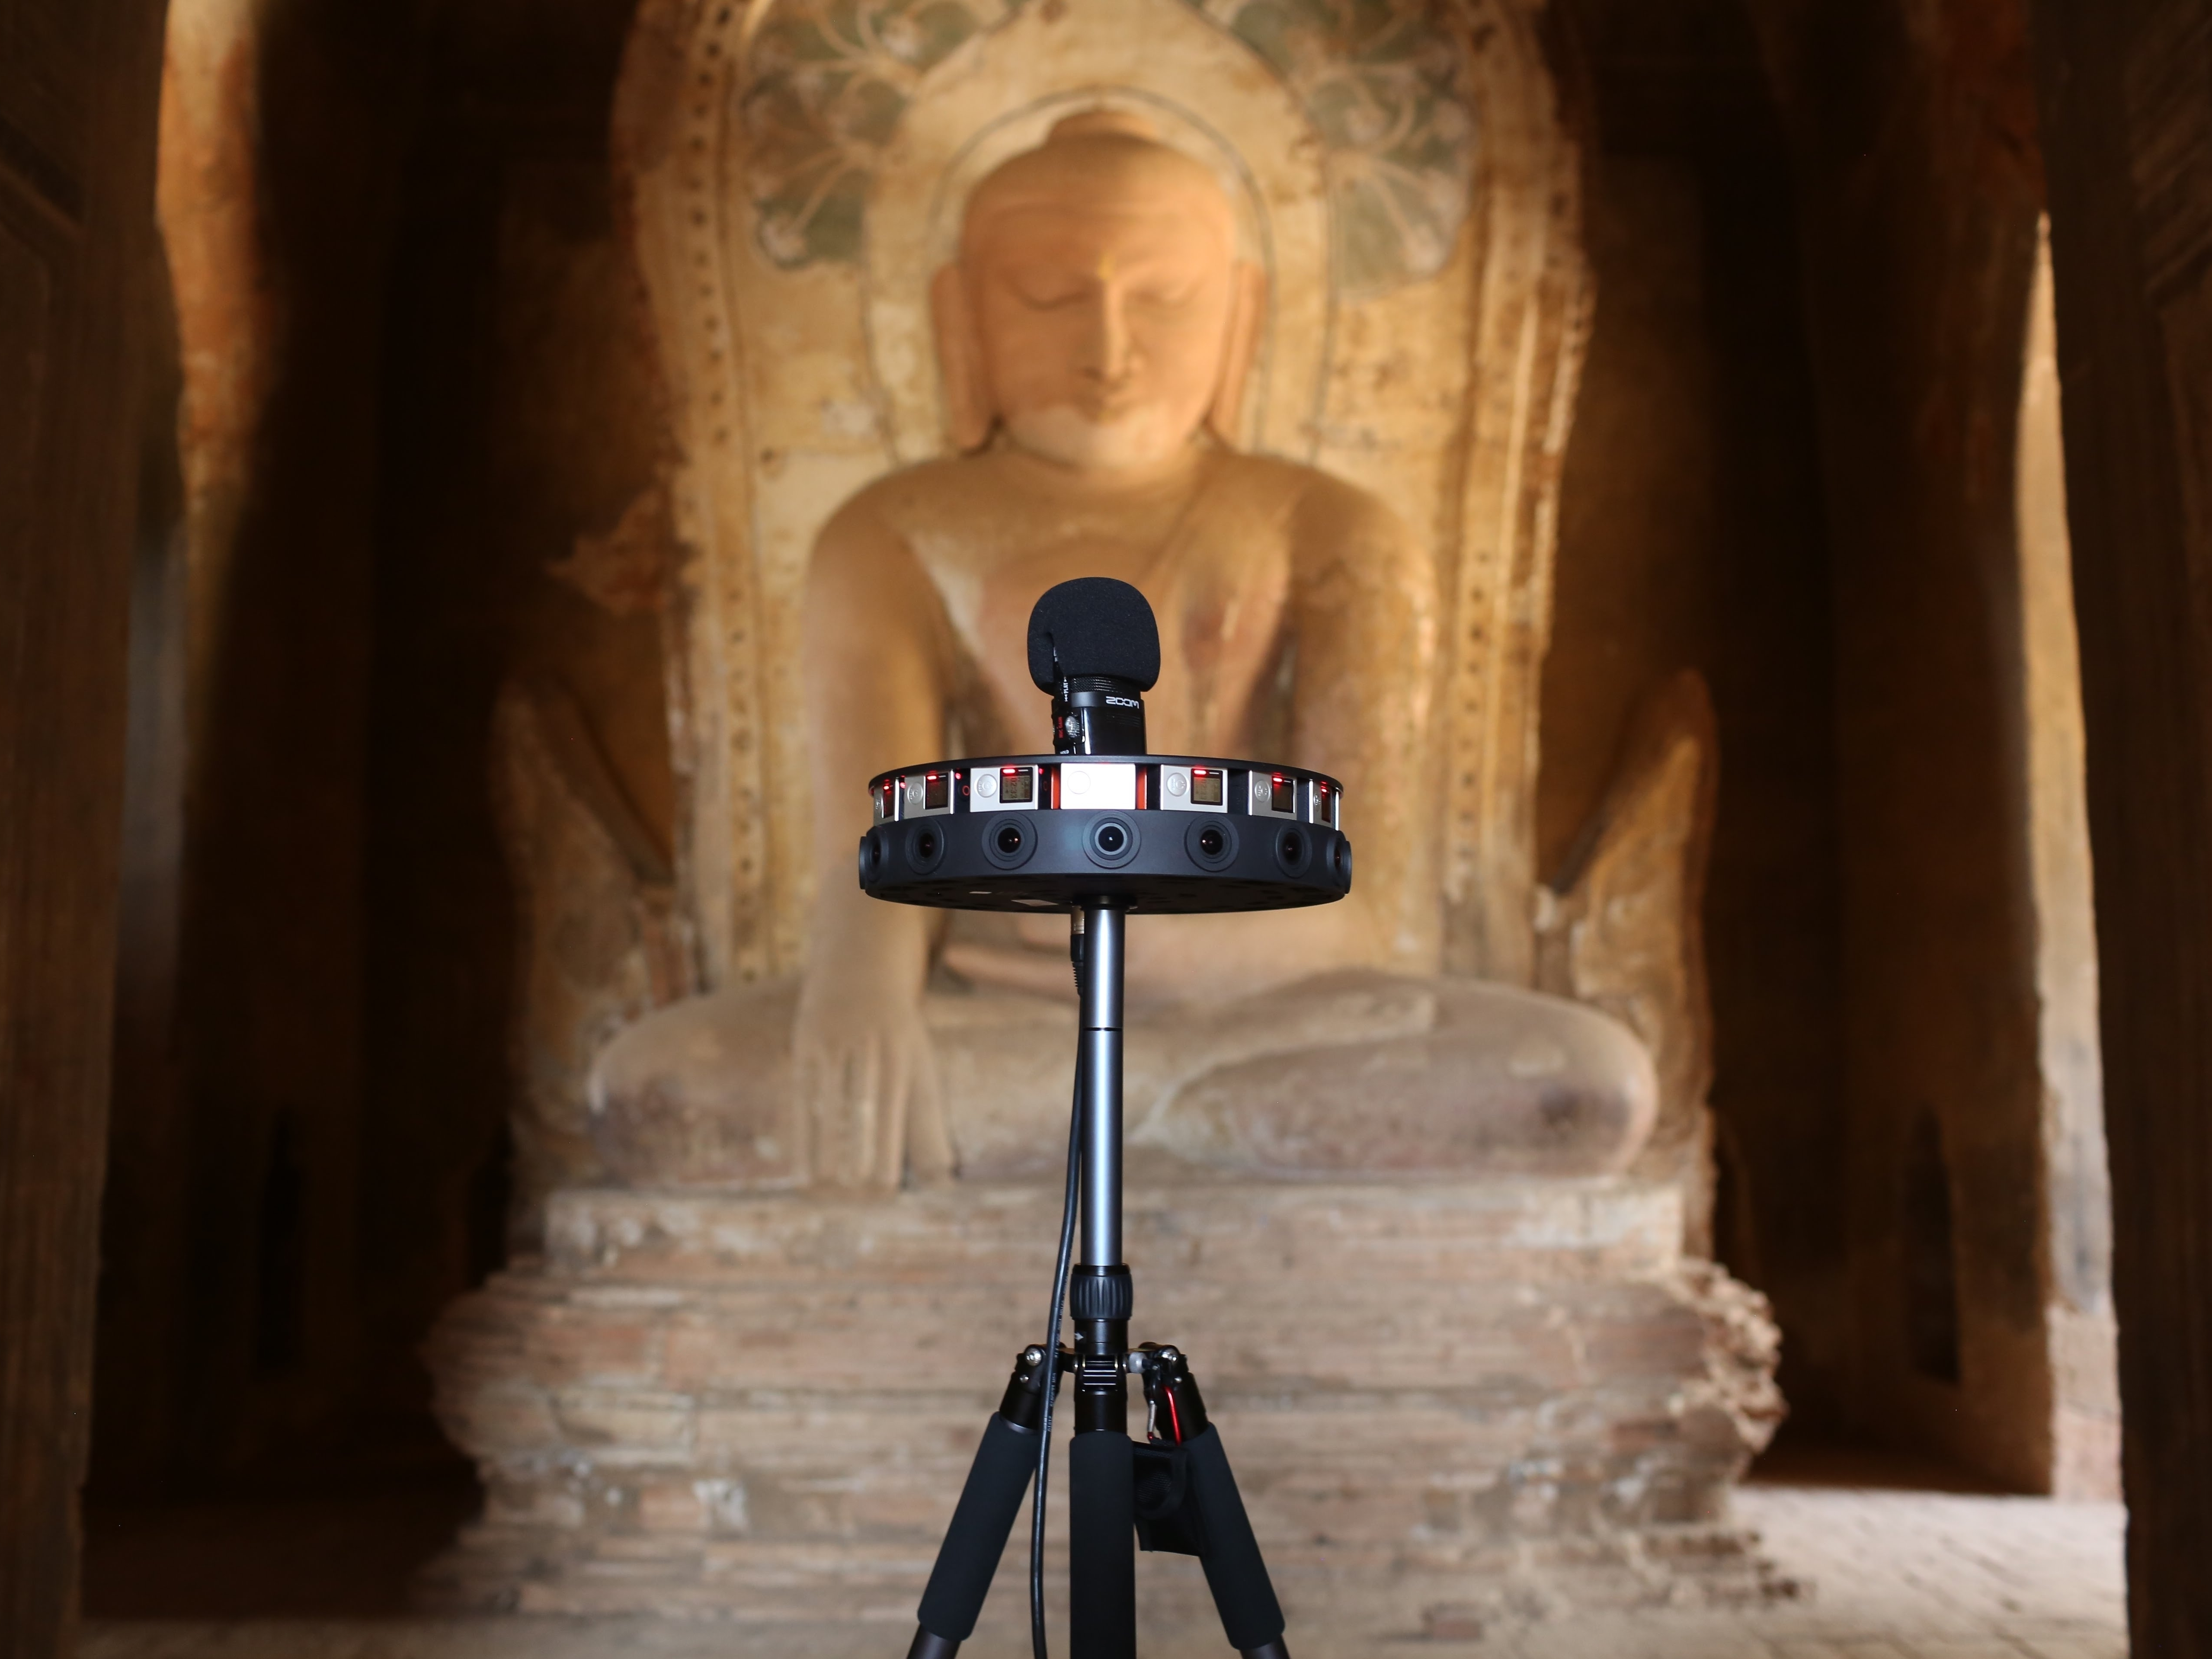 3D Scans Help Preserve History, But Who Should Own Them